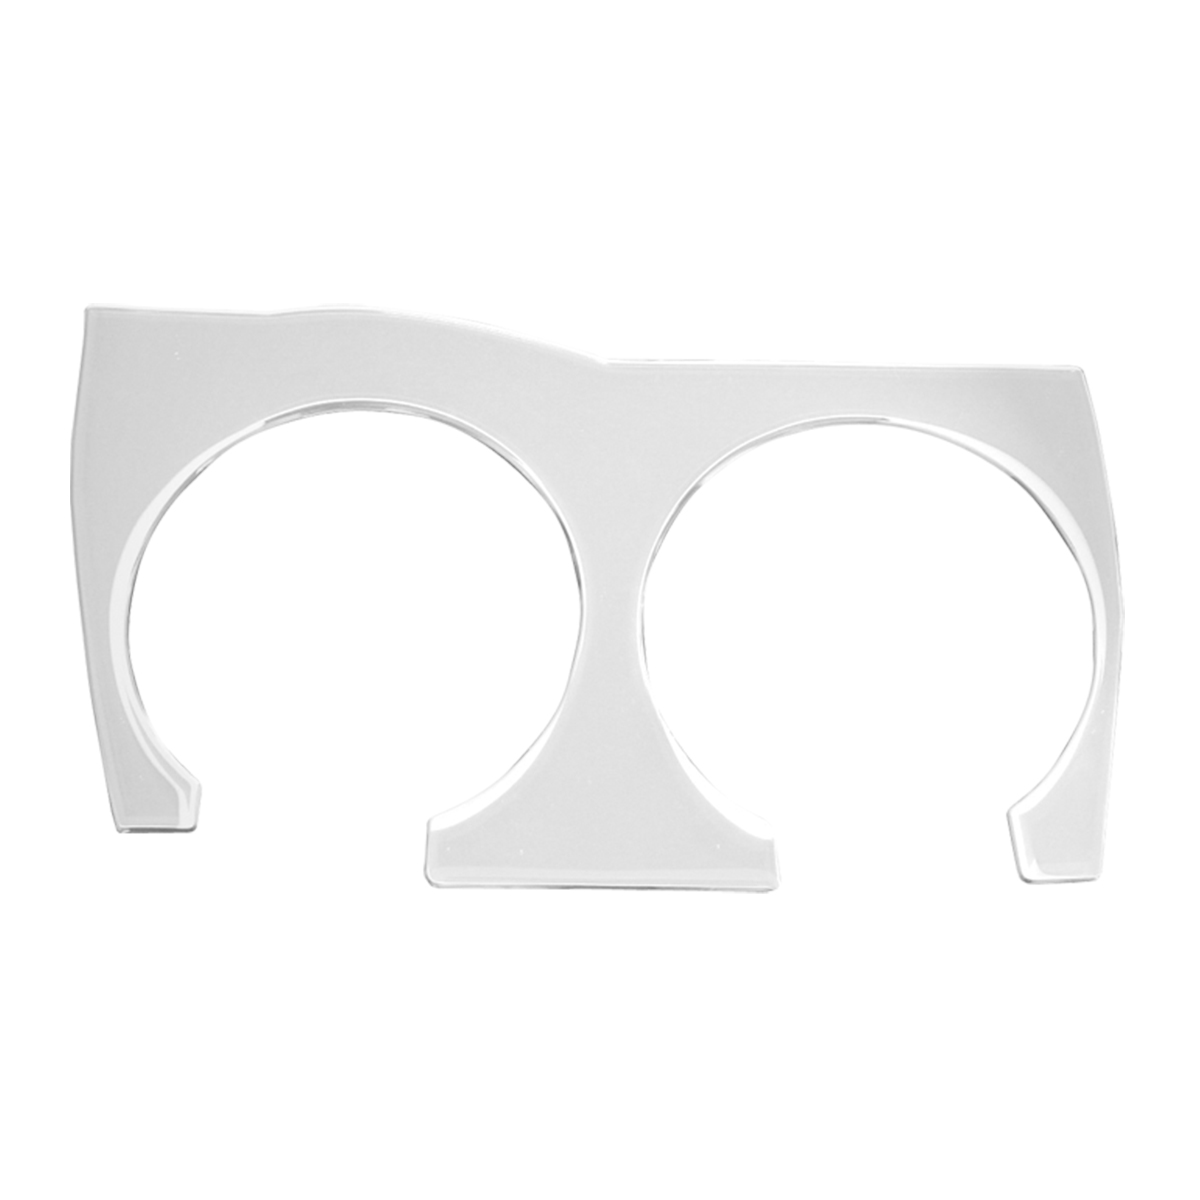 68918 KW Chrome Soft Plastic Cup Holder Trim